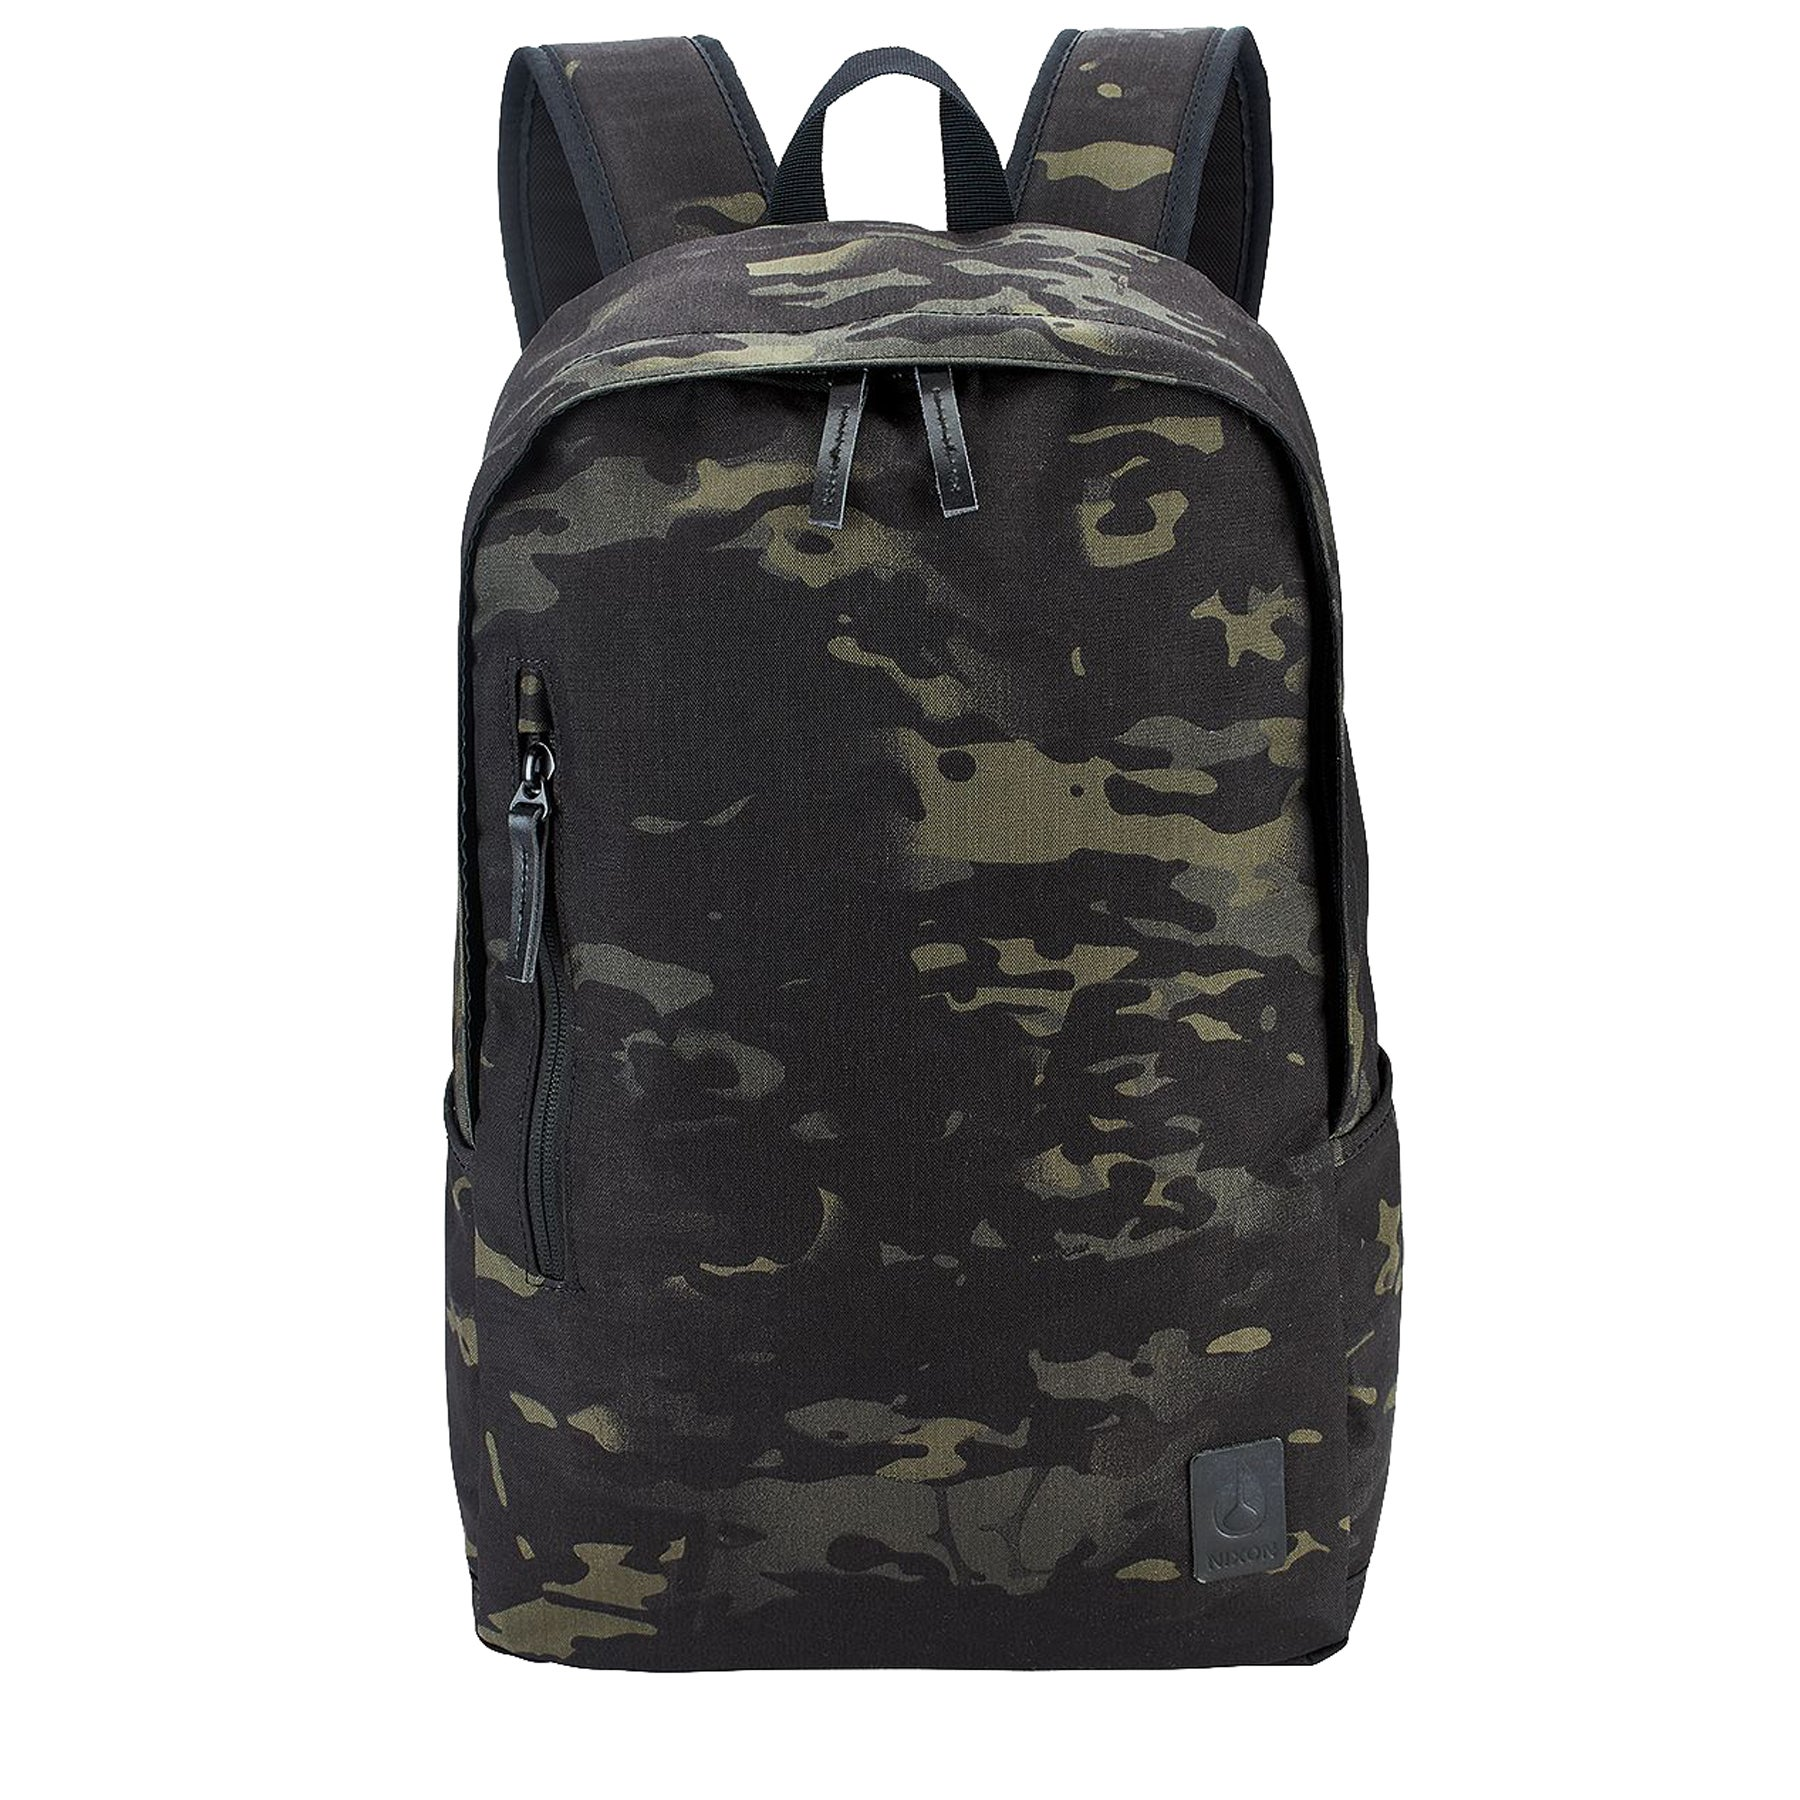 Se Mochilas Smith Nixon Ii Nixon Se Mochilas Smith Uq6wvRaC